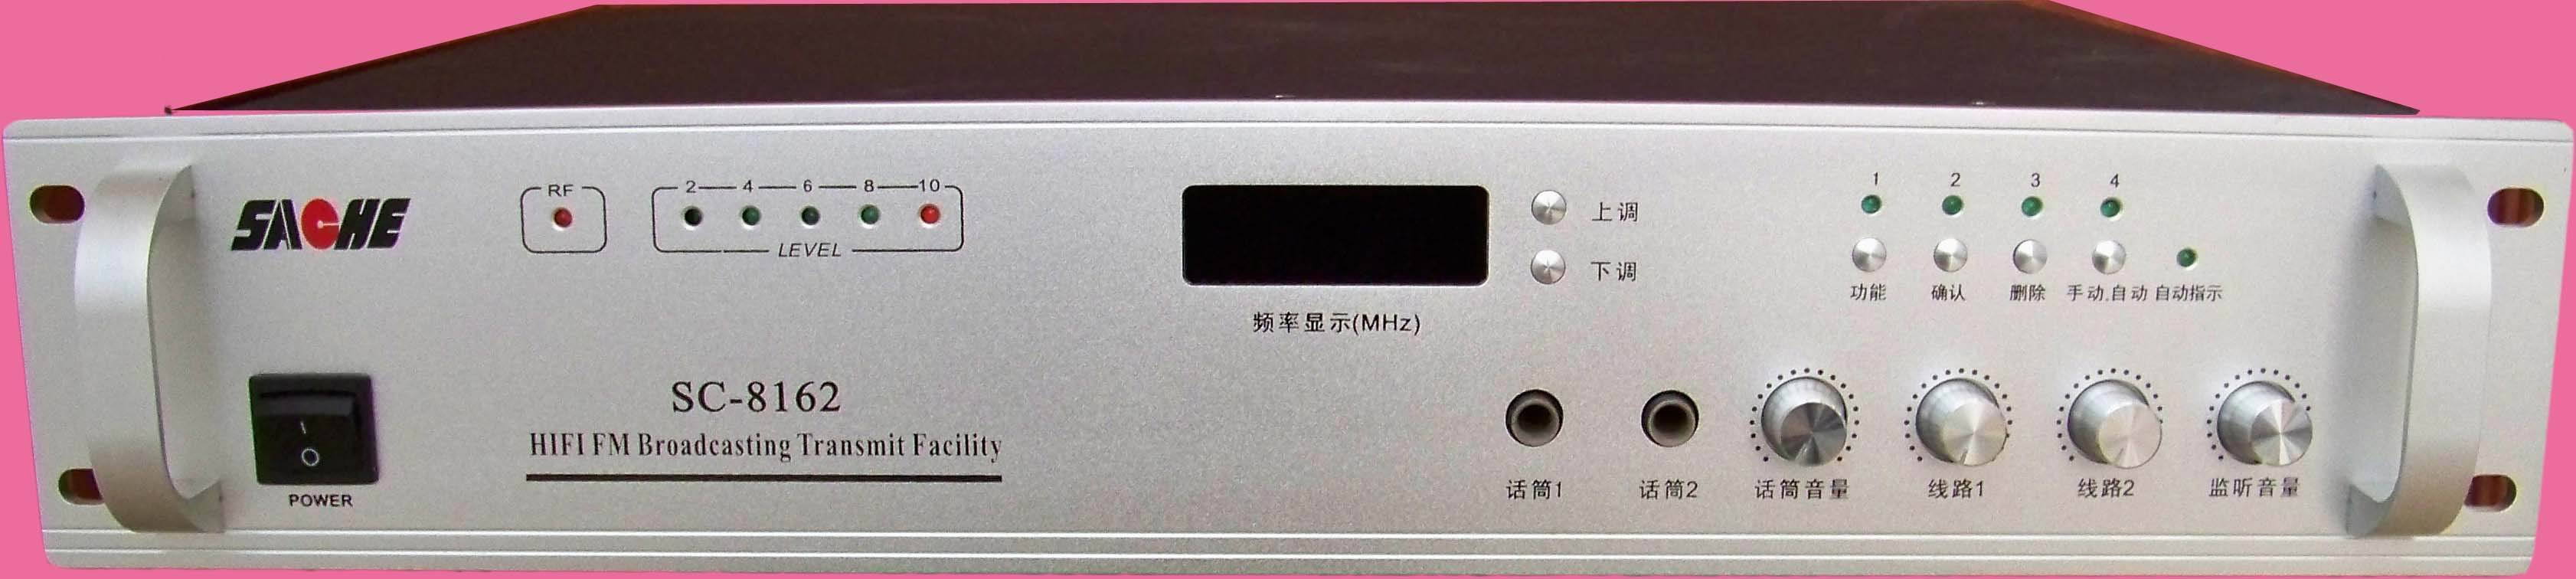 20-watt FM transmitter onboard transmitter broadcasting campus public address system equipment(China (Mainland))